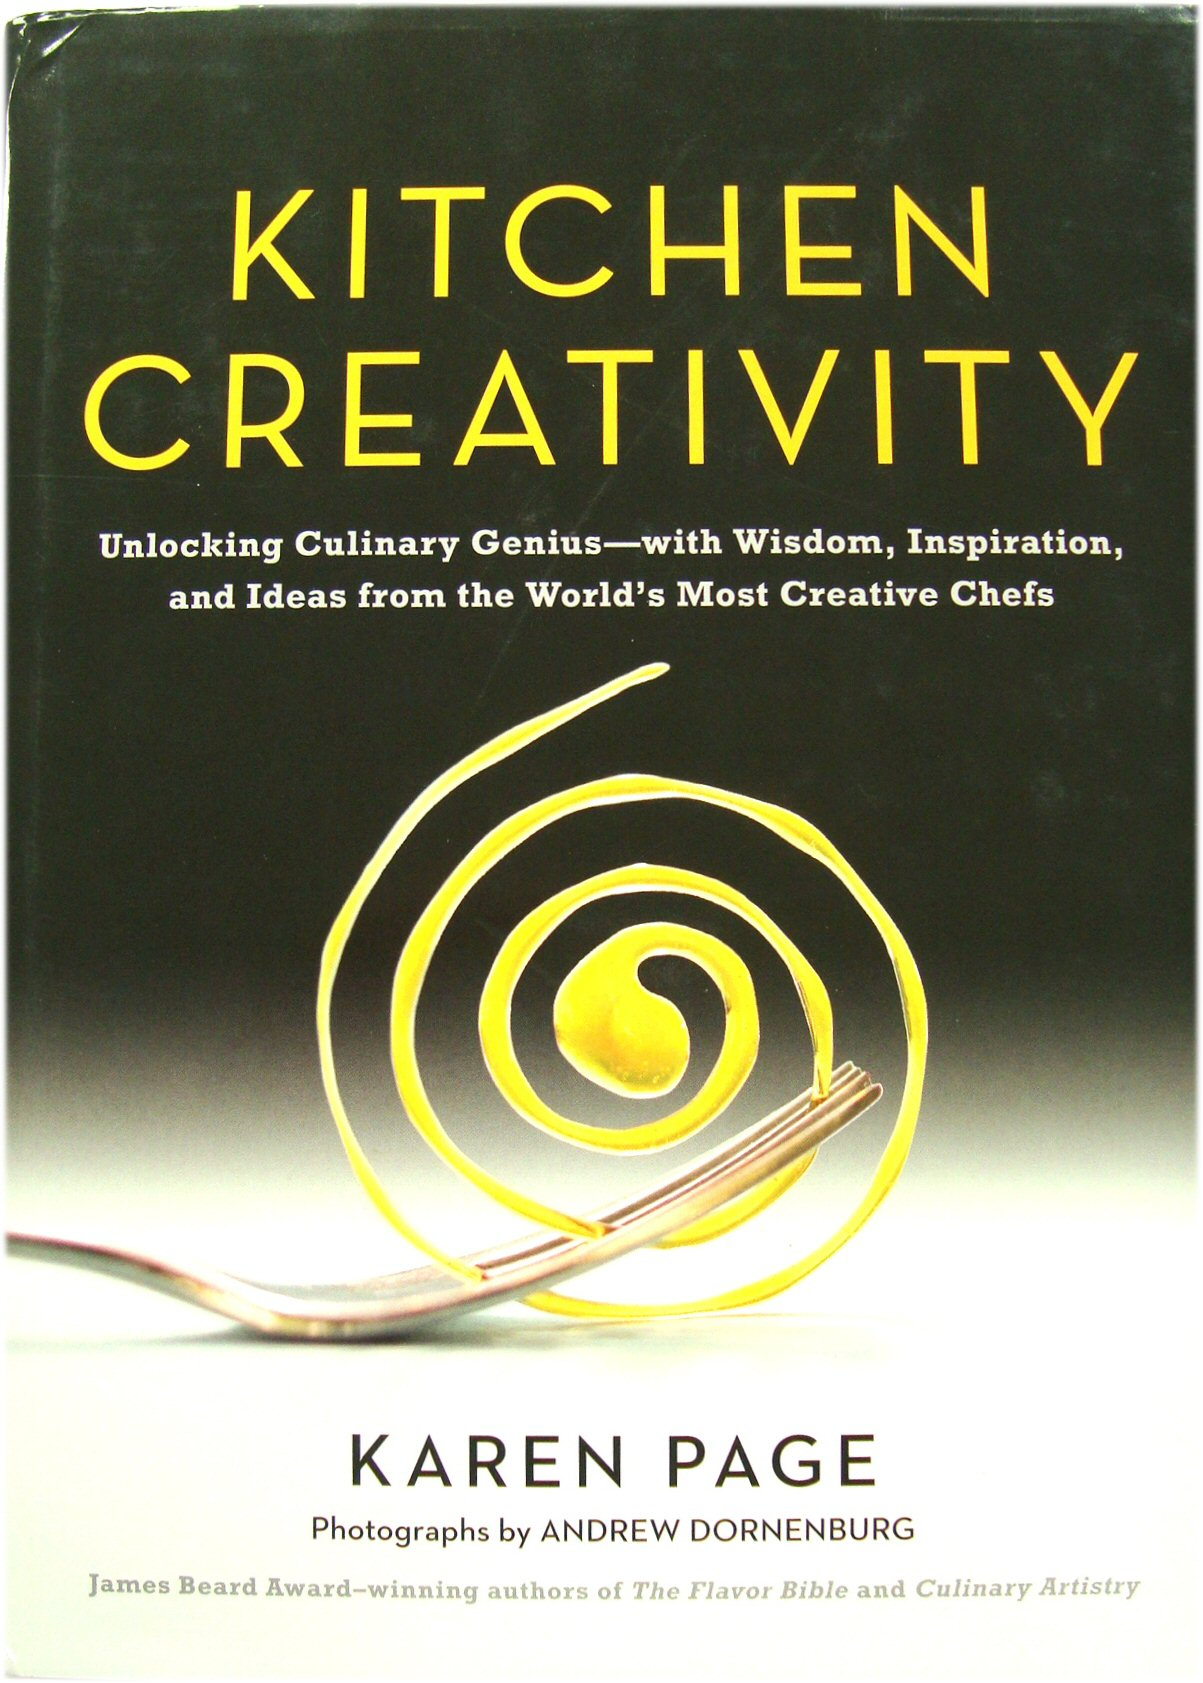 Image for Kitchen Creativity: Unlocking Culinary Genuis - with Wisdom, Inspiration, and Ideas from the World's Most Creative Chefs